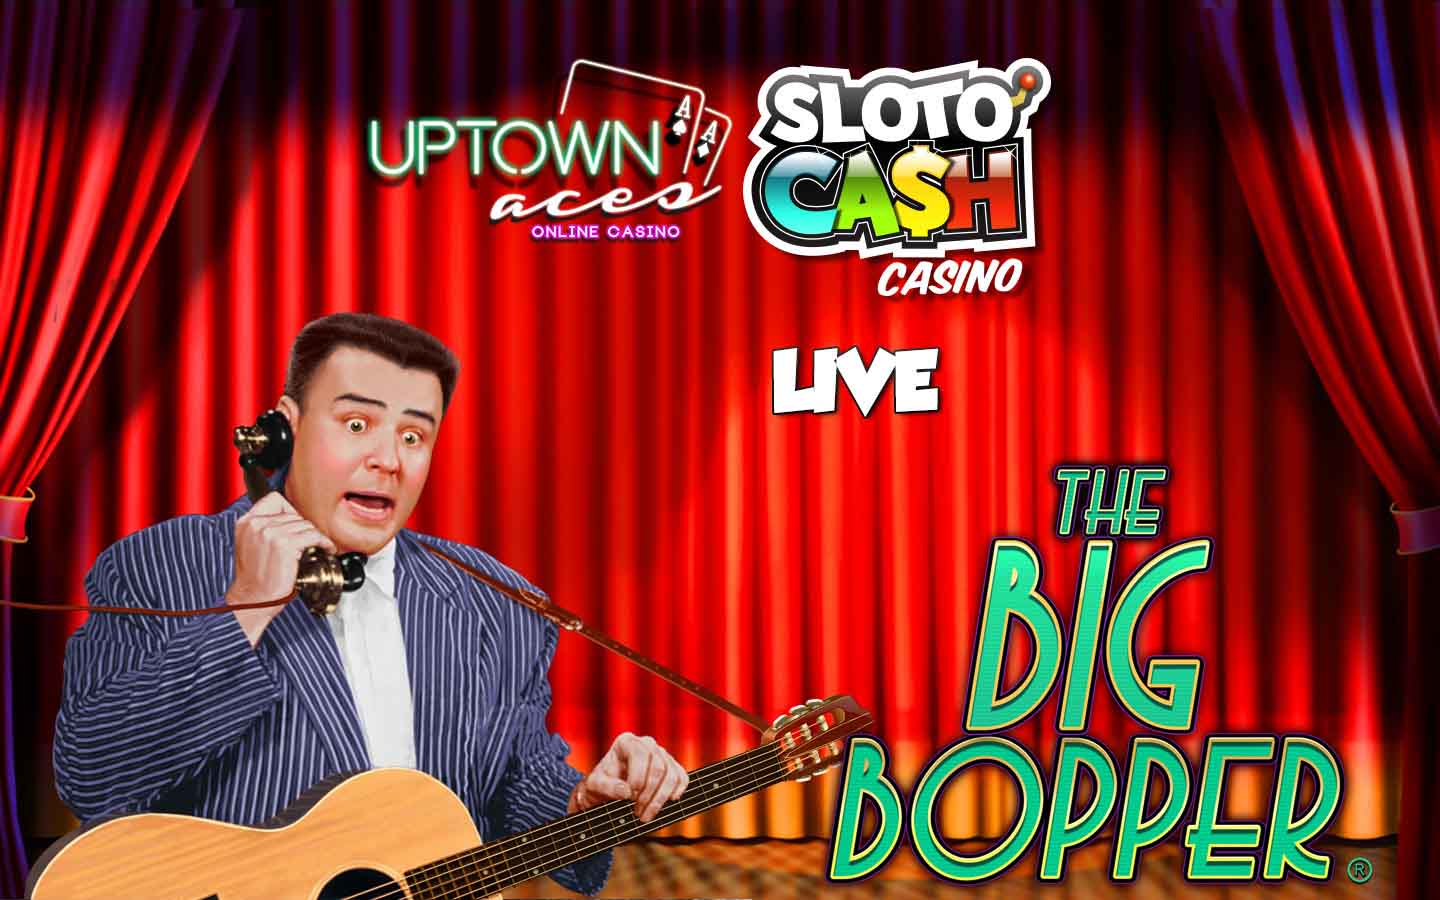 Big Bopper bonus at SlotoCash and Uptown Aces casino